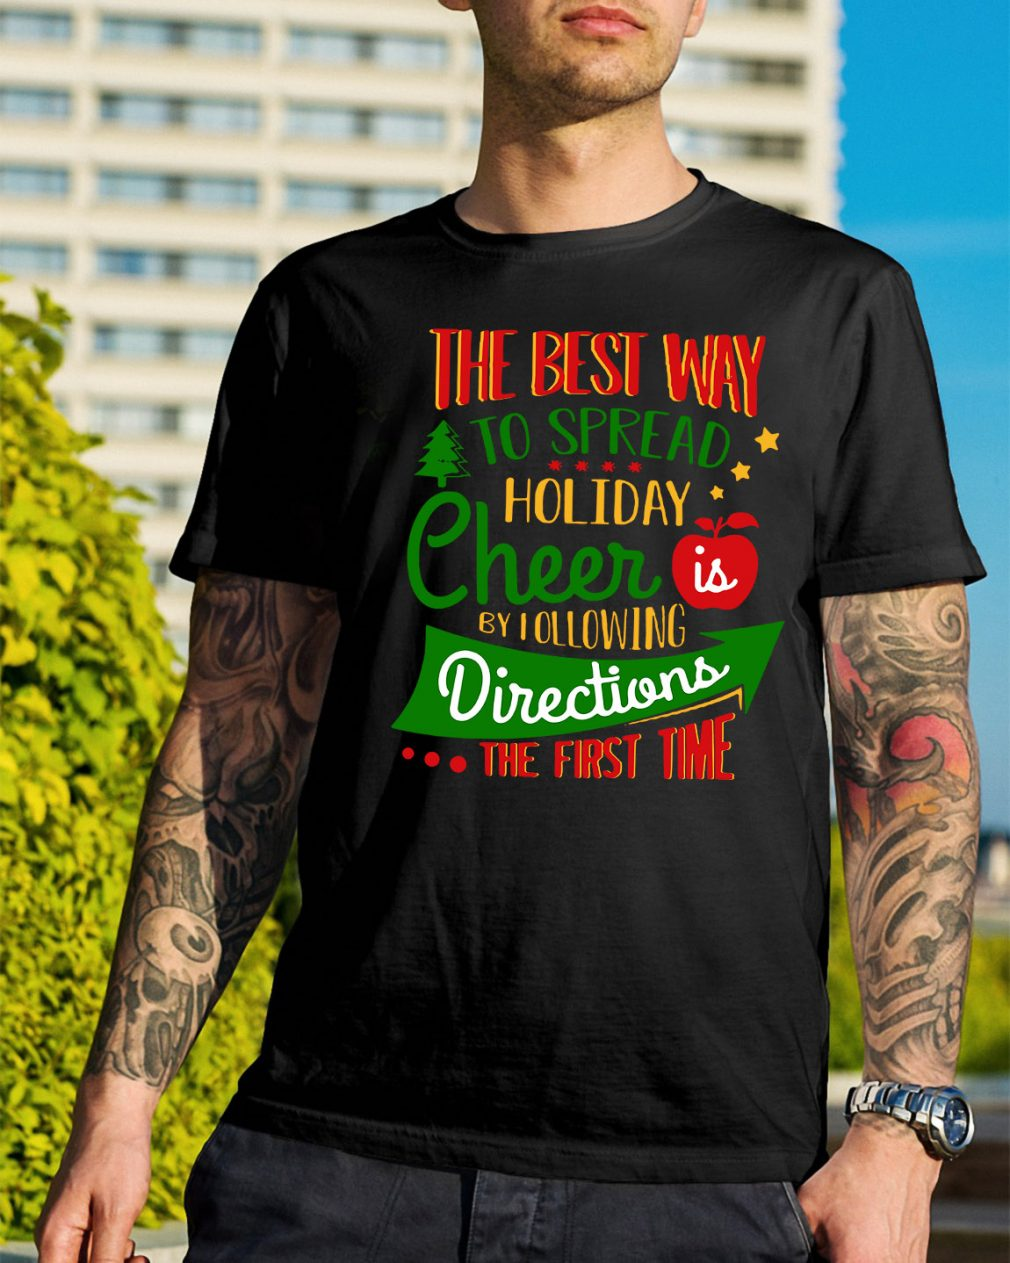 The best way to spread Christmas cheer by I following directions shirt